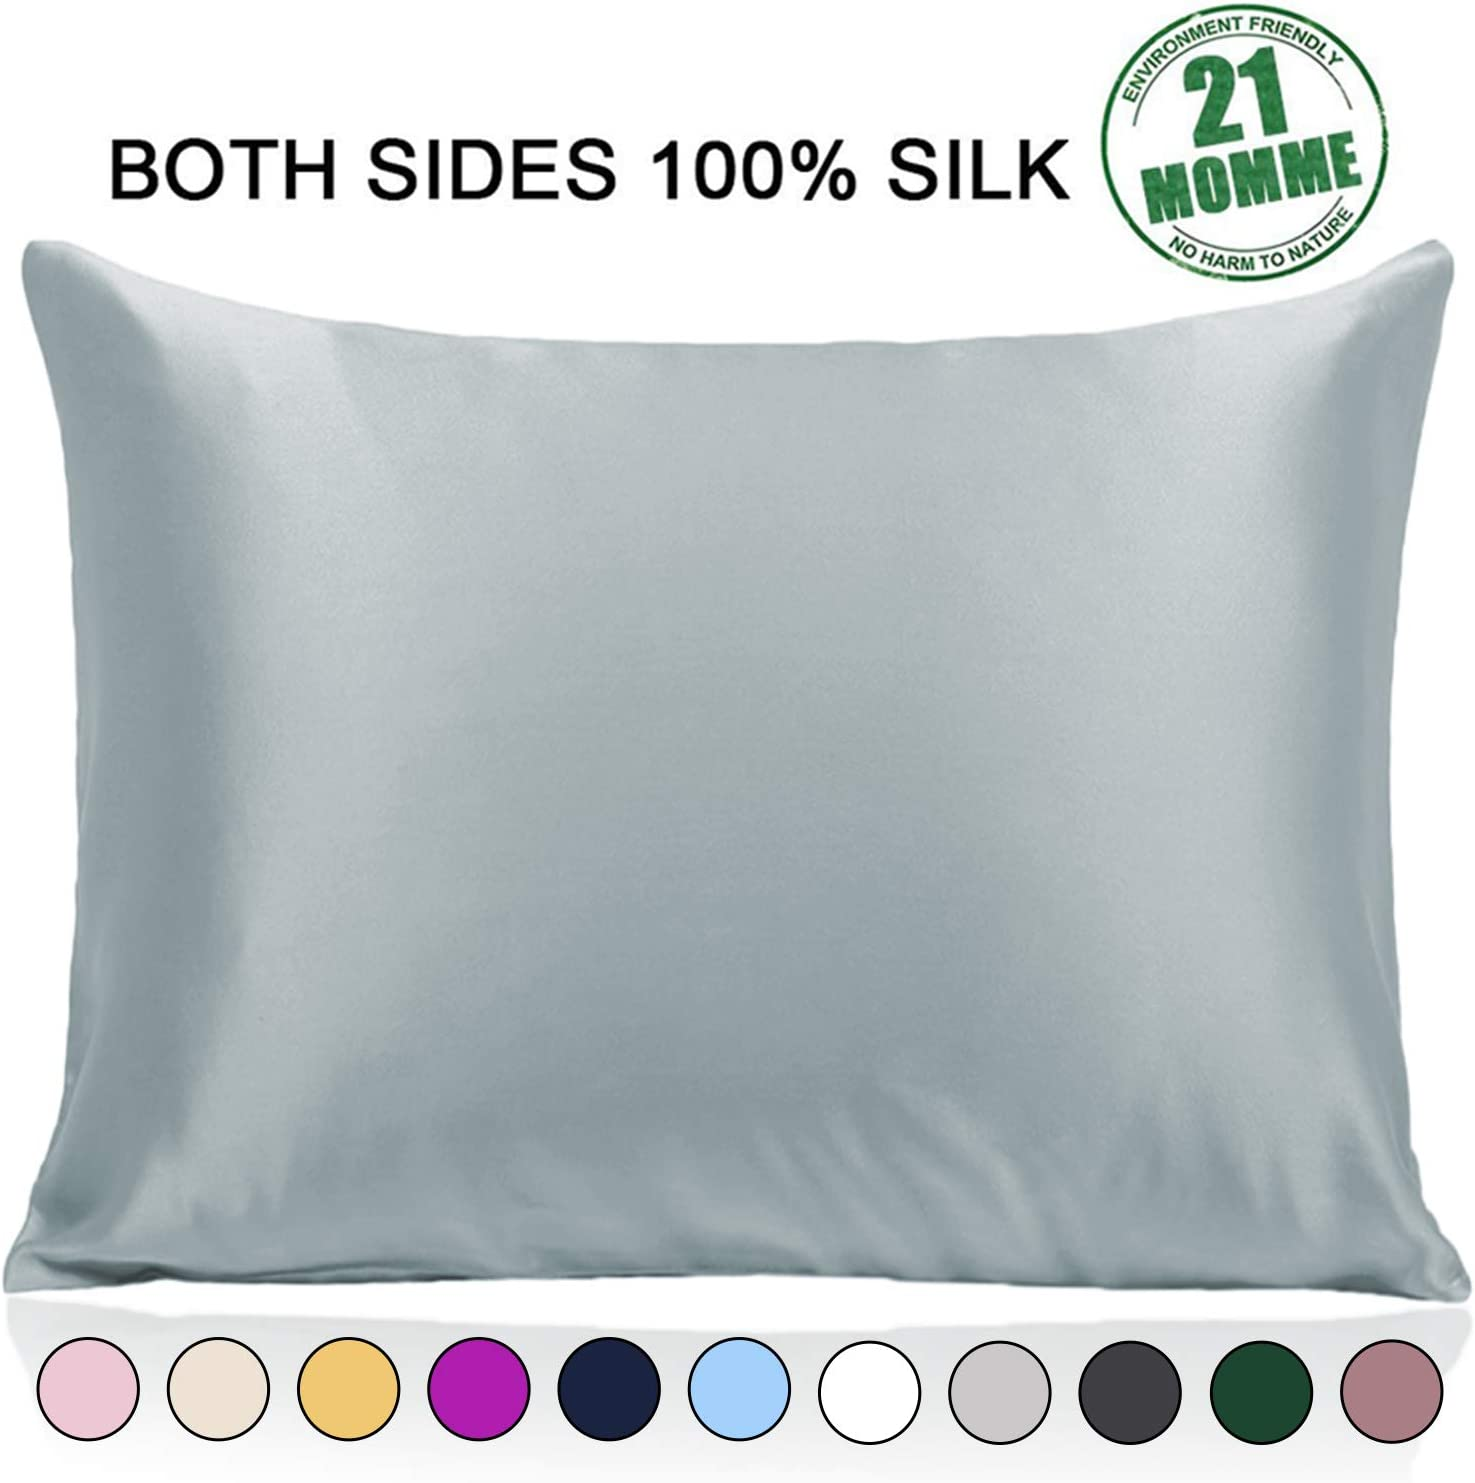 Ravmix 100% Pure Mulberry Silk Pillowcase Standard Size For Hair And Skin With Hidden Zipper, 21 Momme 600tc Hypoallergenic Soft Breathable Both Sides Silk Pillow Case, 20×26inch, Aqua Green Home & Kitchen